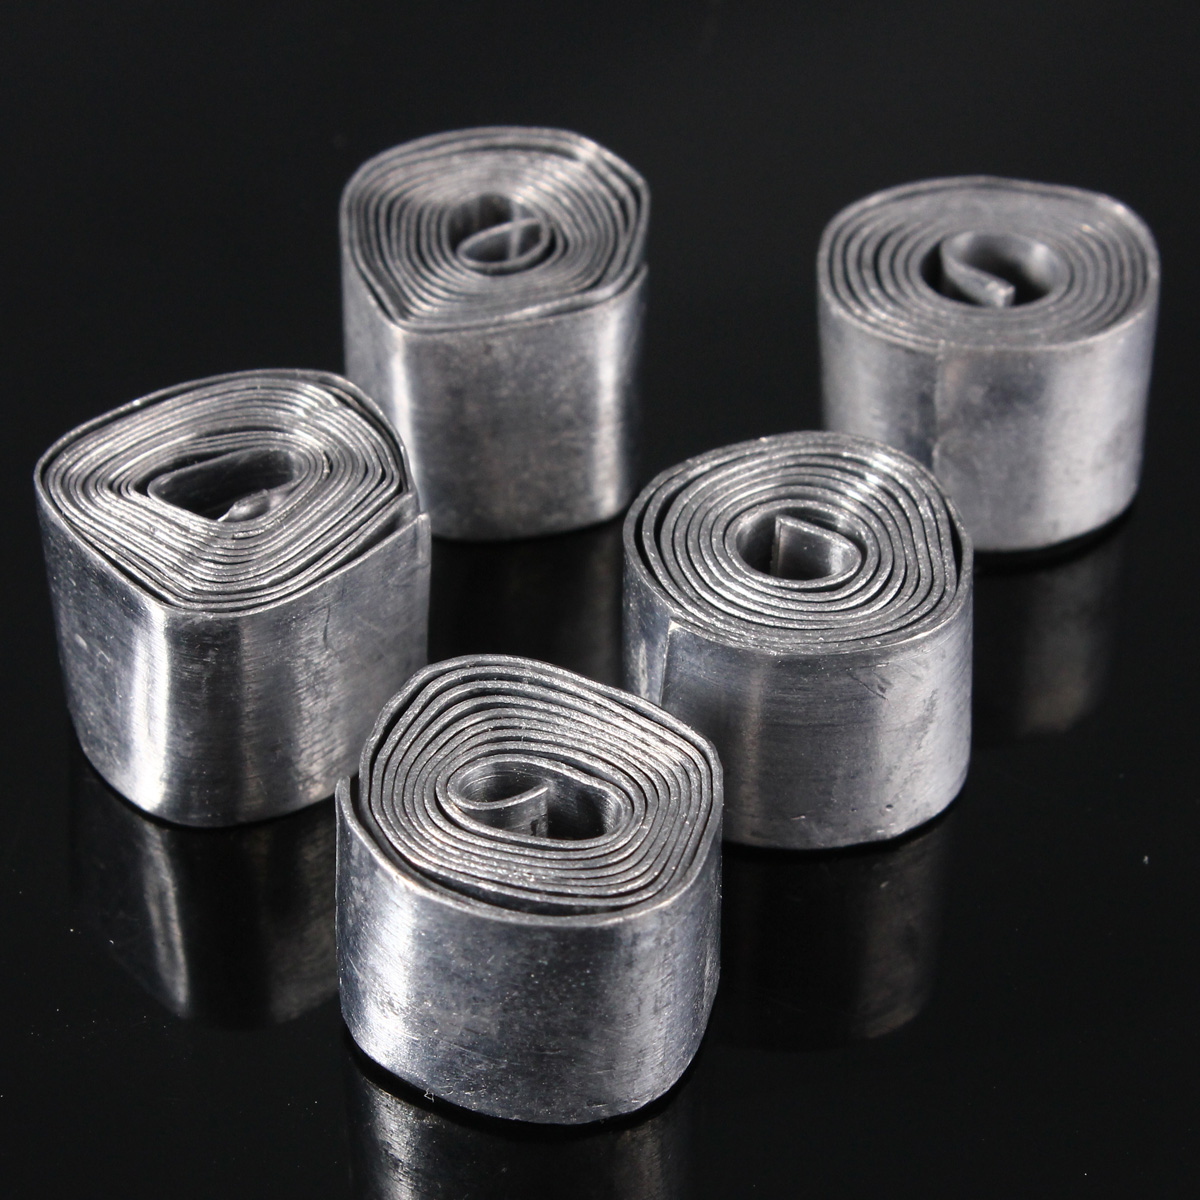 0.4-1MM Soft Lead Sheet Roll Fishing Angeln Sinkers Clip Tackle Fishing Supplies Fishing Accessories